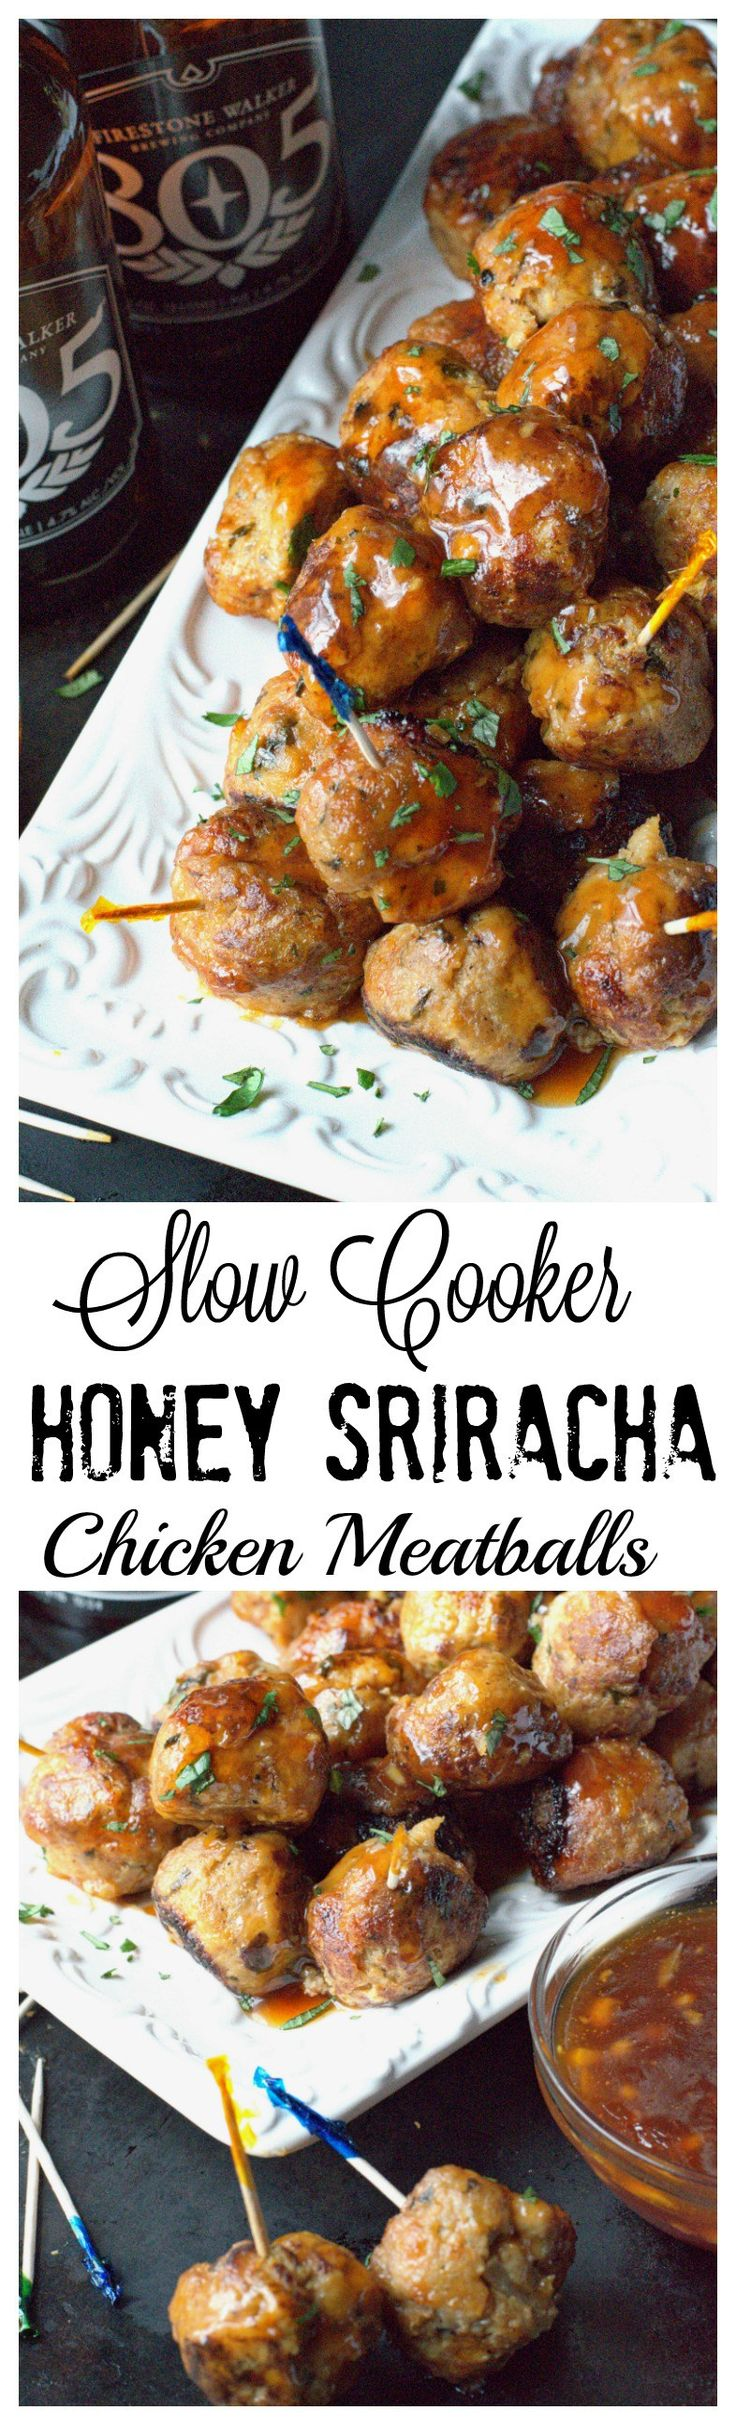 These slow cooker honey sriracha chicken meatballs are a real crowd pleaser. The perfect finger food!